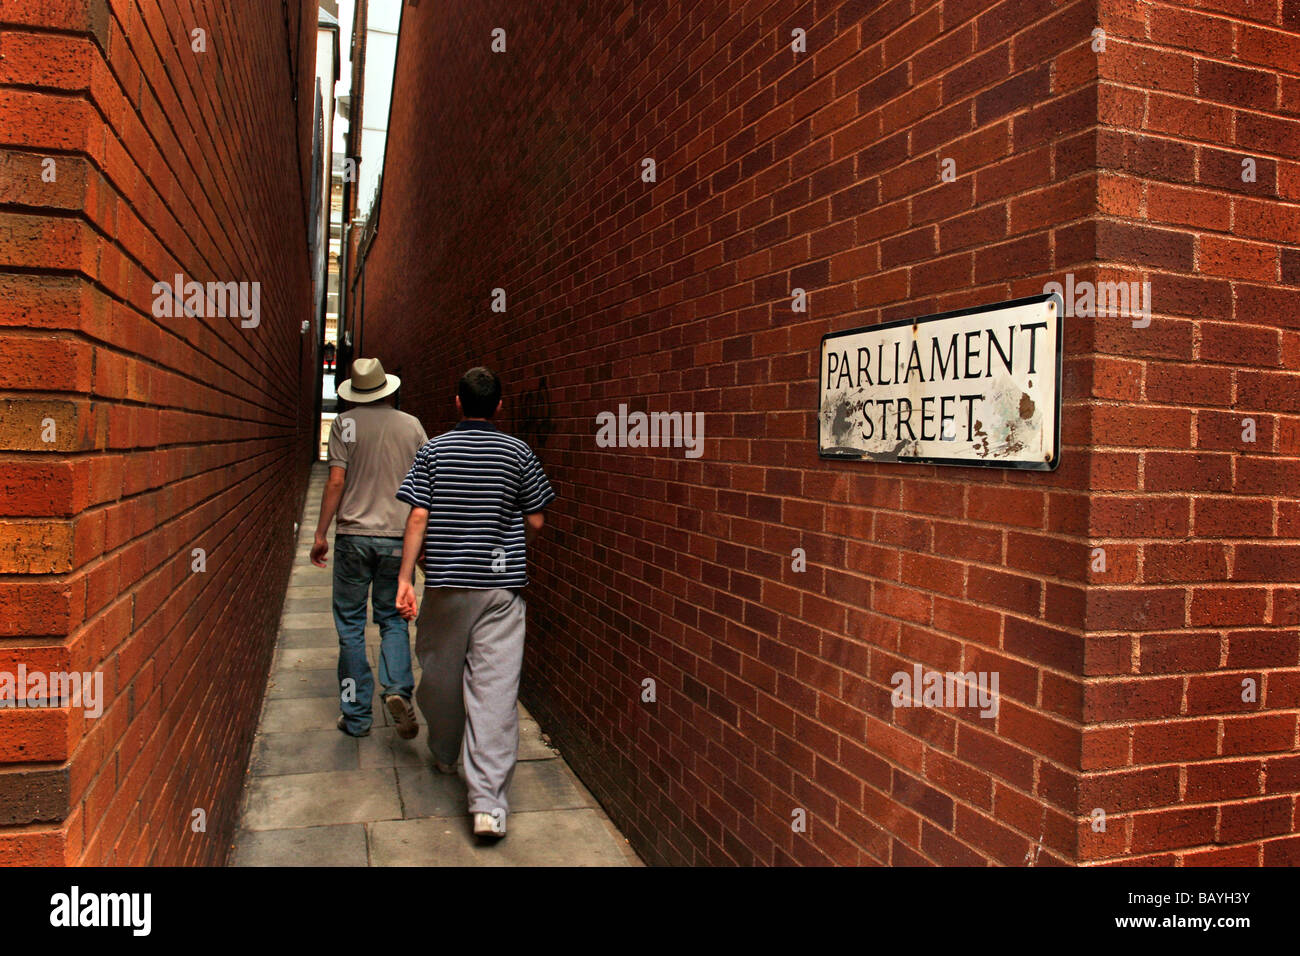 Image result for The world's narrowest street